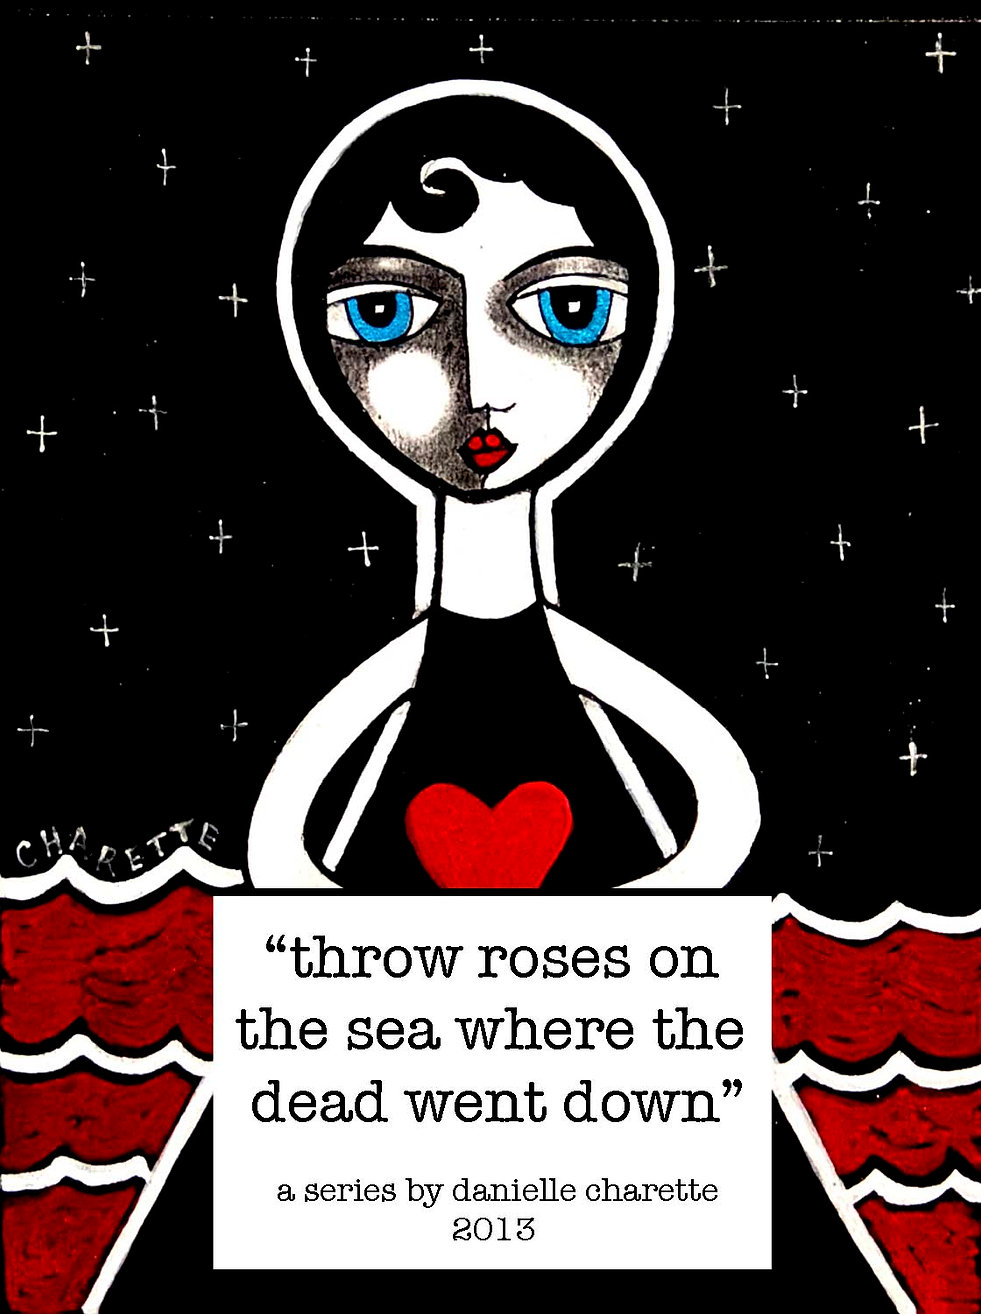 THROW ROSES ON THE SEA, A SERIES OF ART